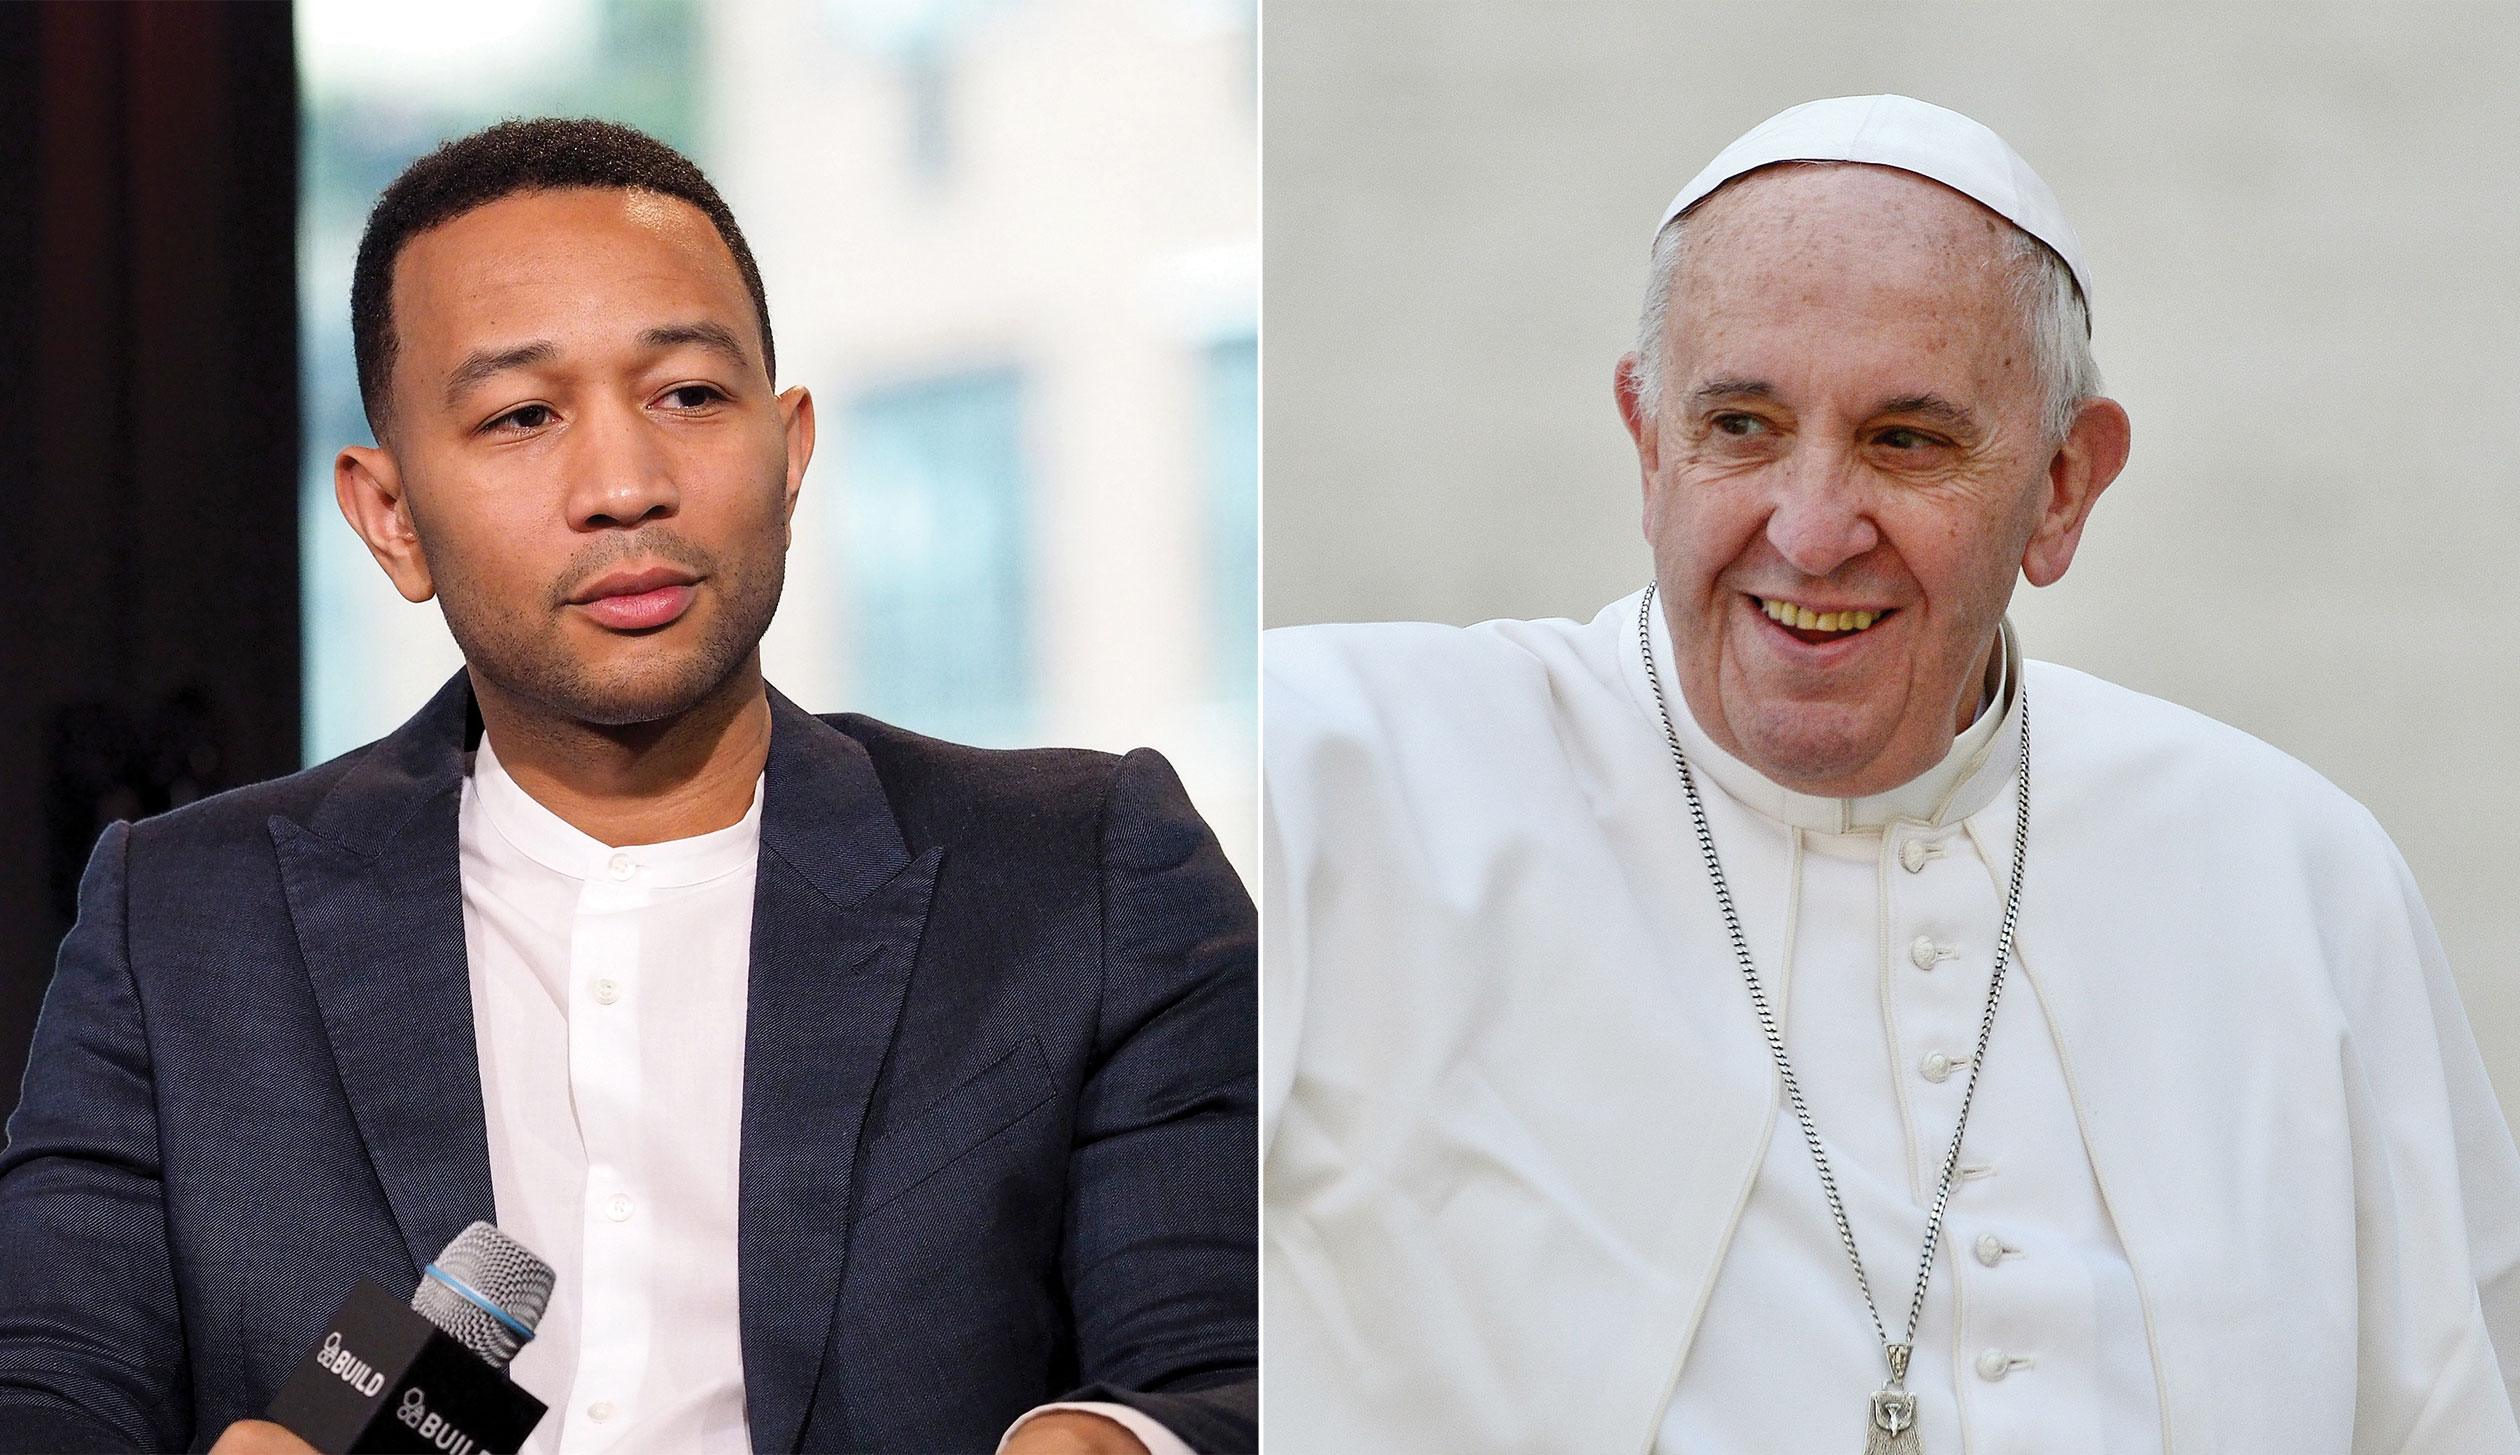 John Legend and Pope Francis.